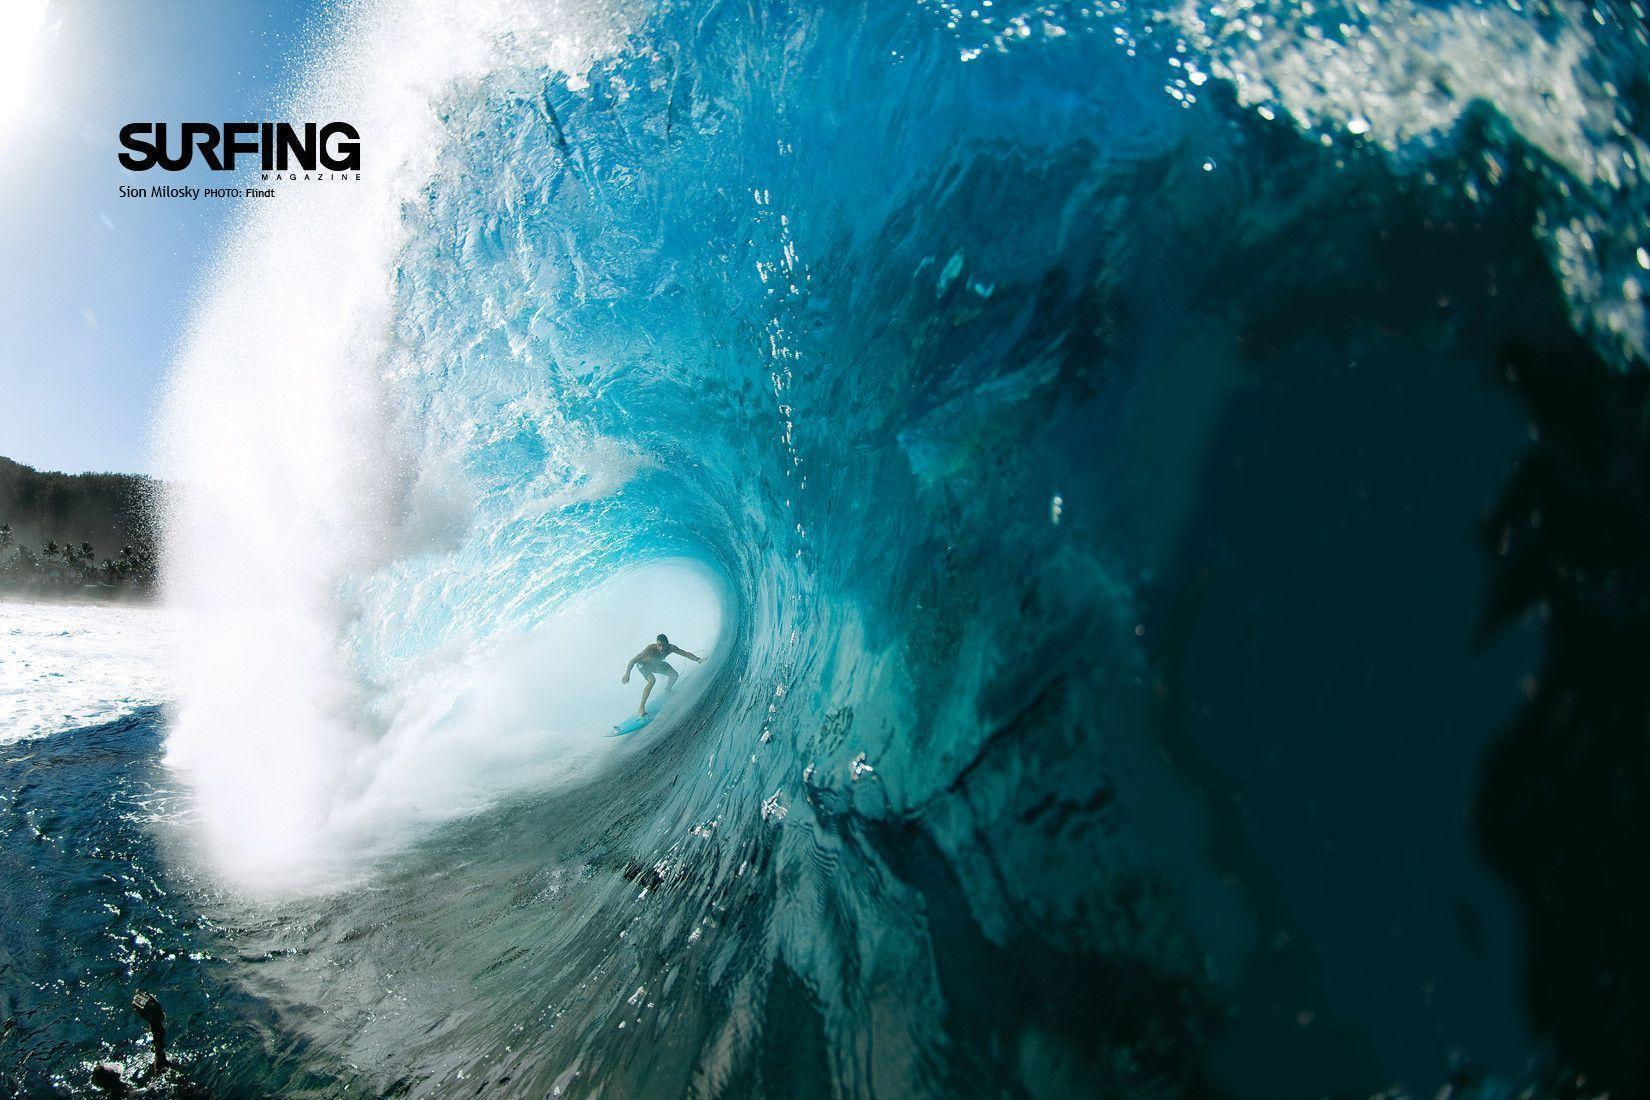 surfing wallpaper full hd - photo #20